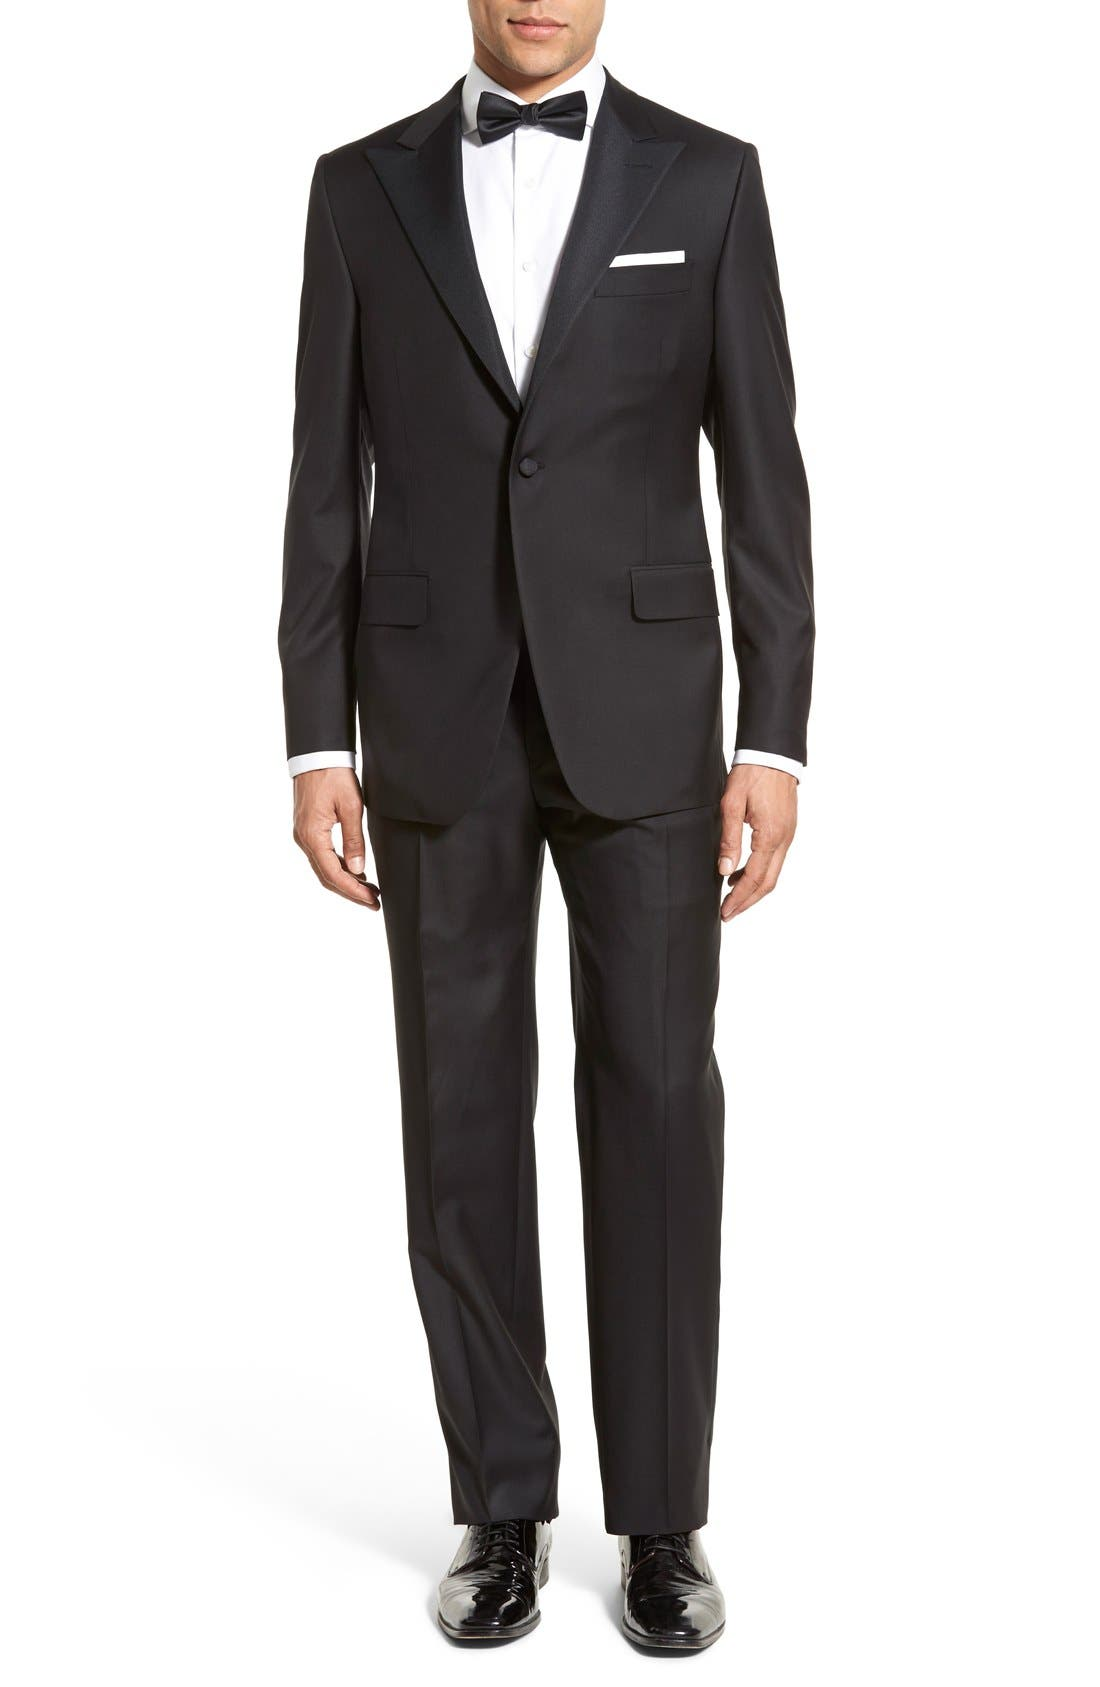 HICKEY FREEMAN Classic Fit Tasmanian Wool Tailcoat Tuxedo